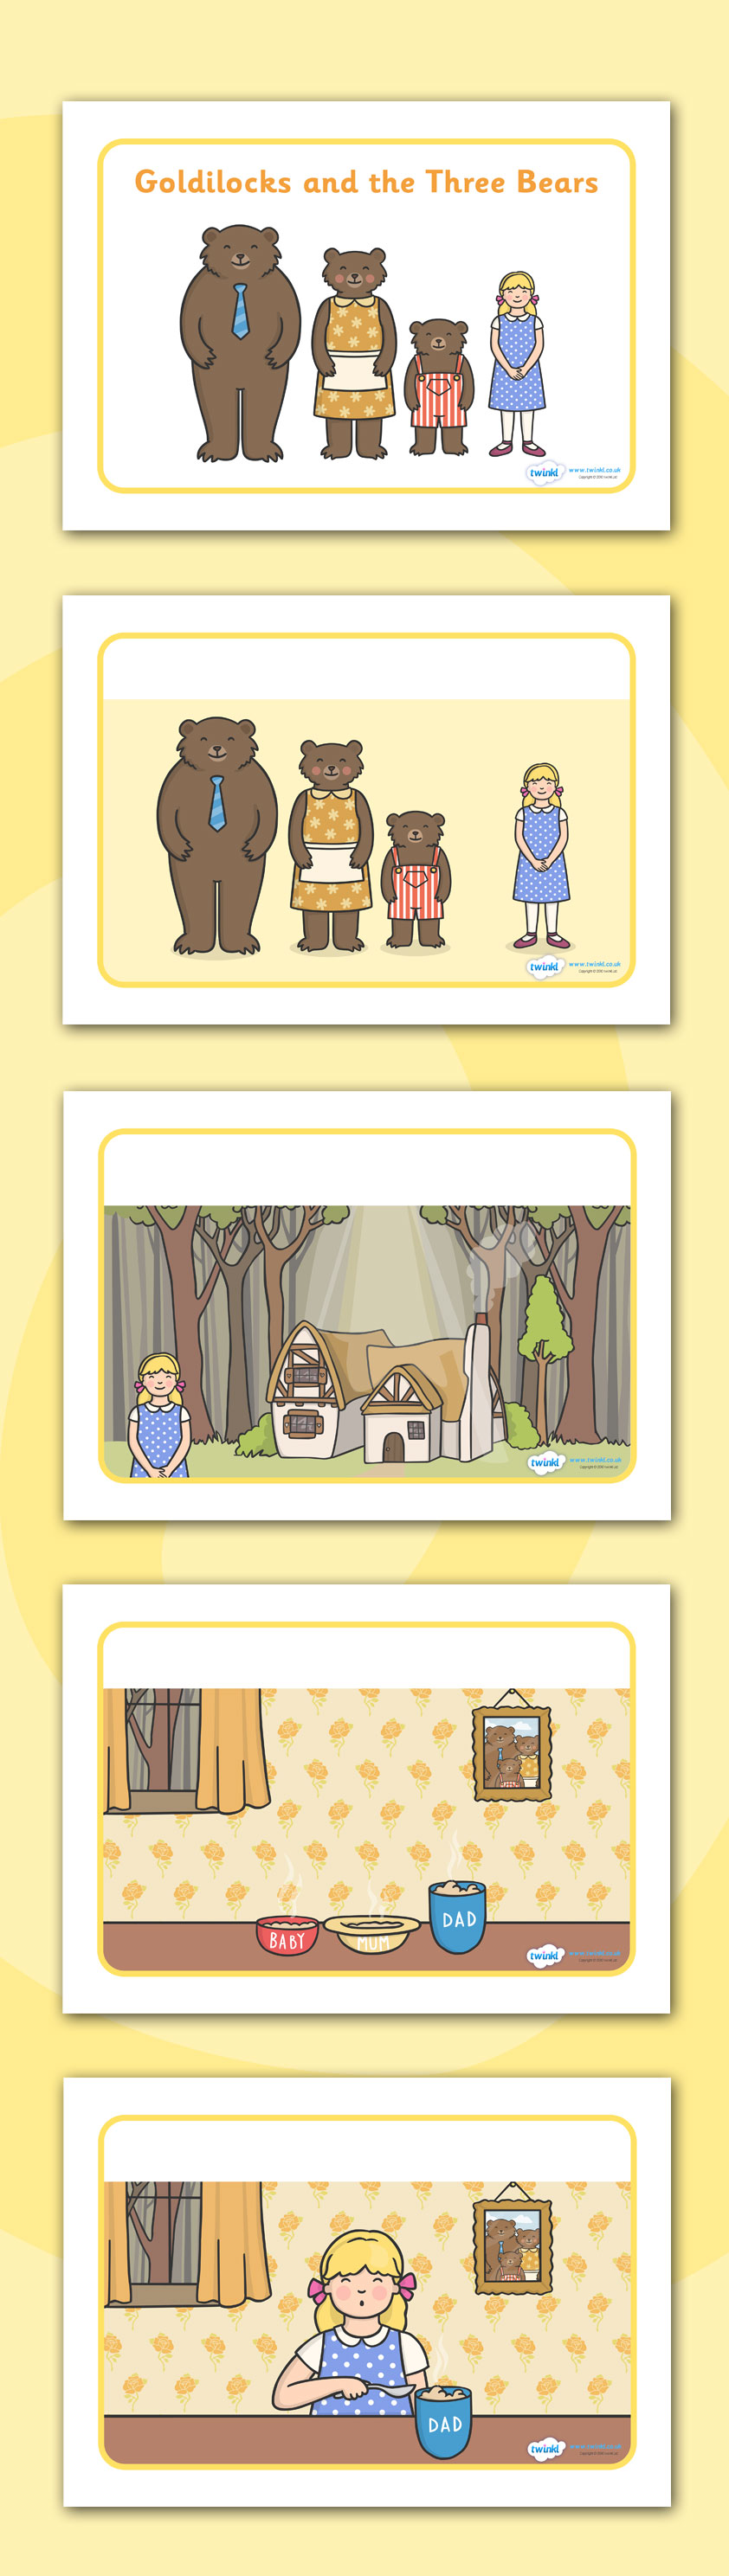 Twinkl Resources >> Goldilocks and the Three Bears Story.